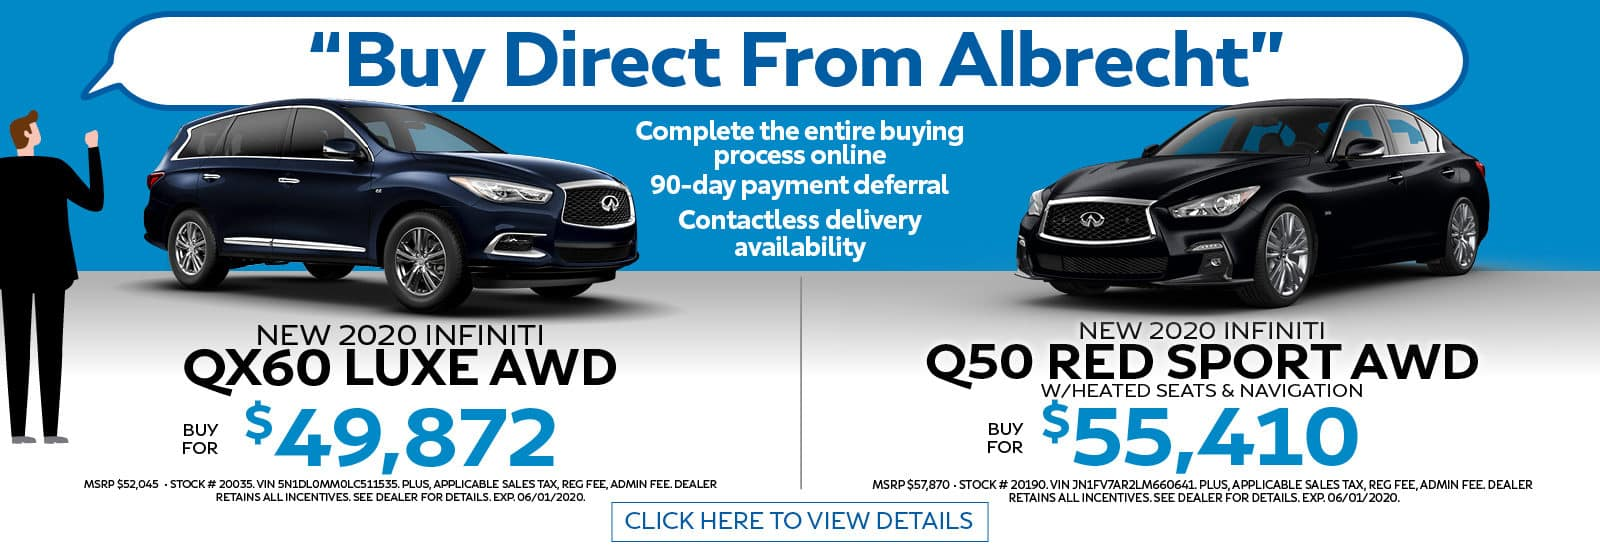 Buy Direct from Albrecht Complete the Entire Buying Process Online